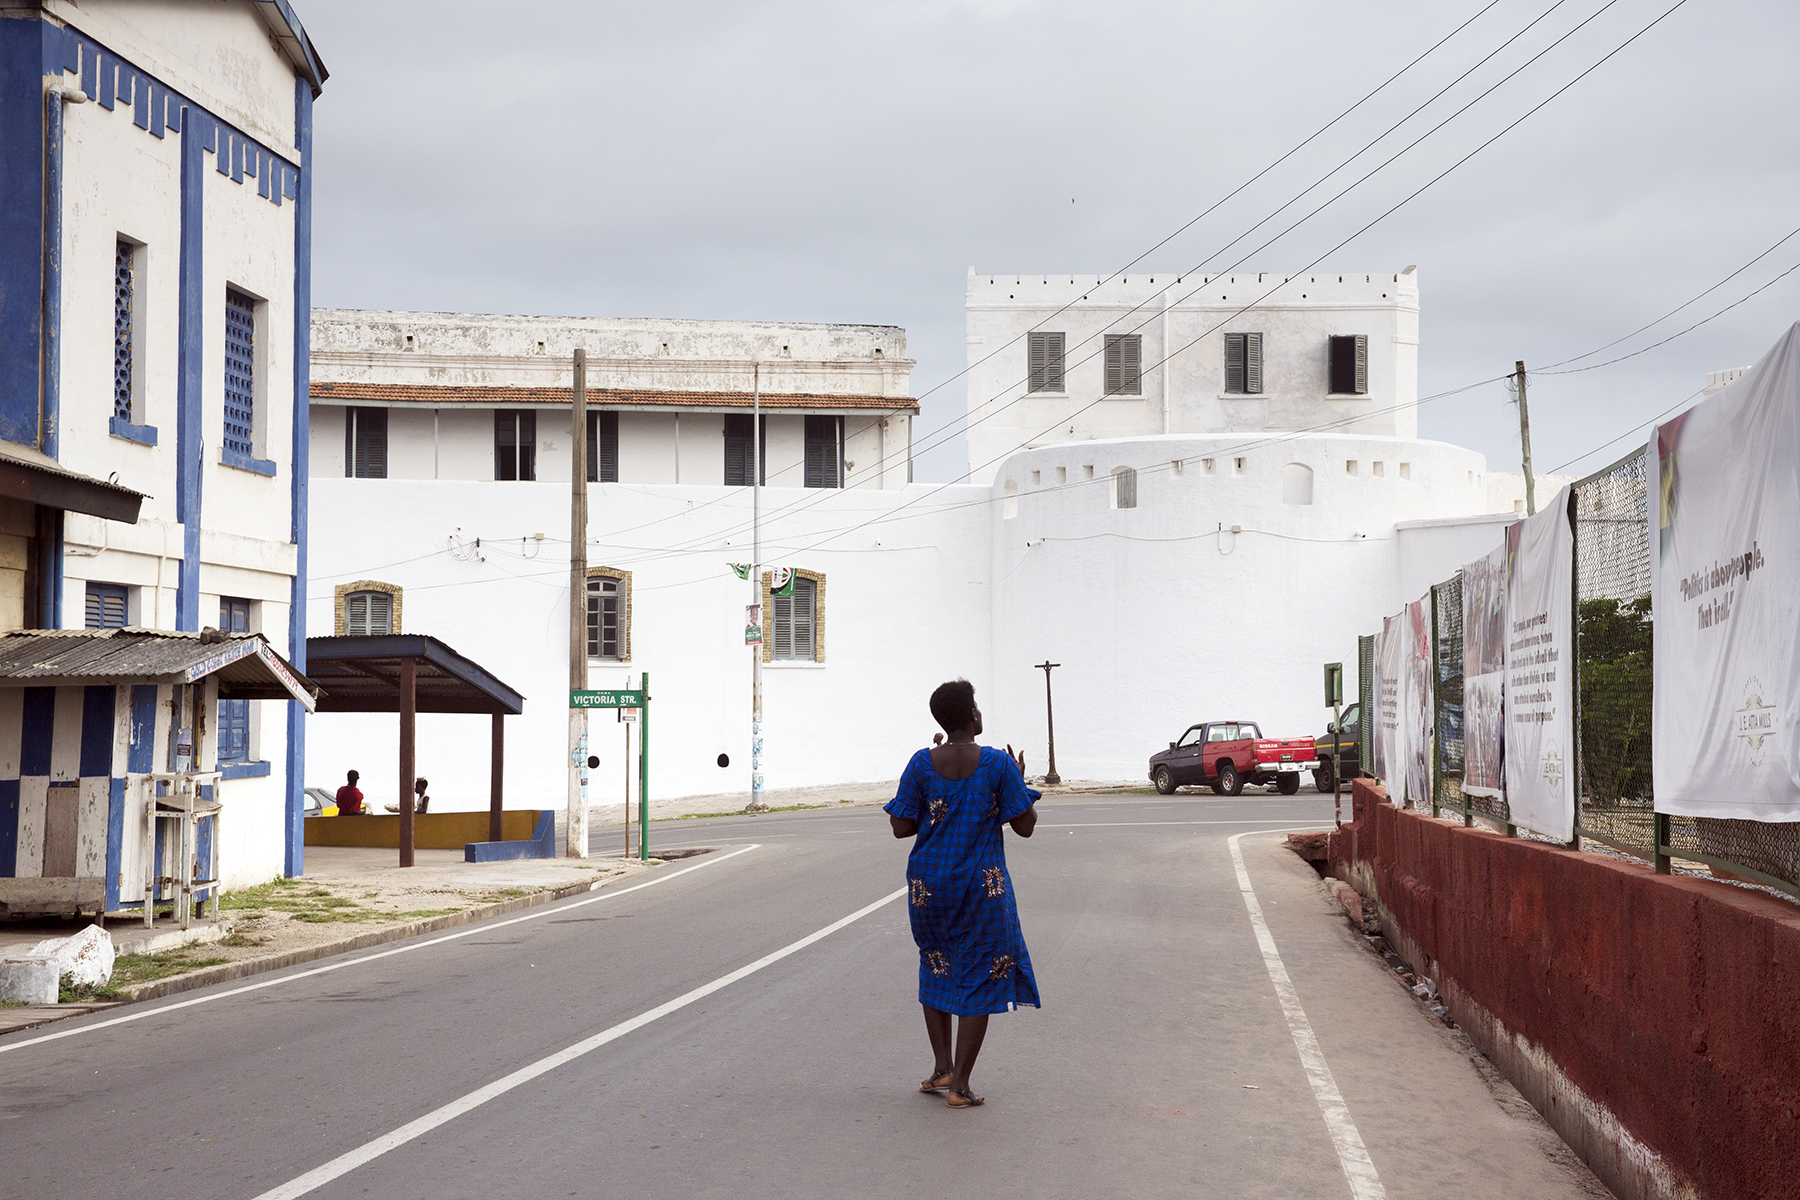 Walking towards Cape Coast Castle, on the way to Oasis.